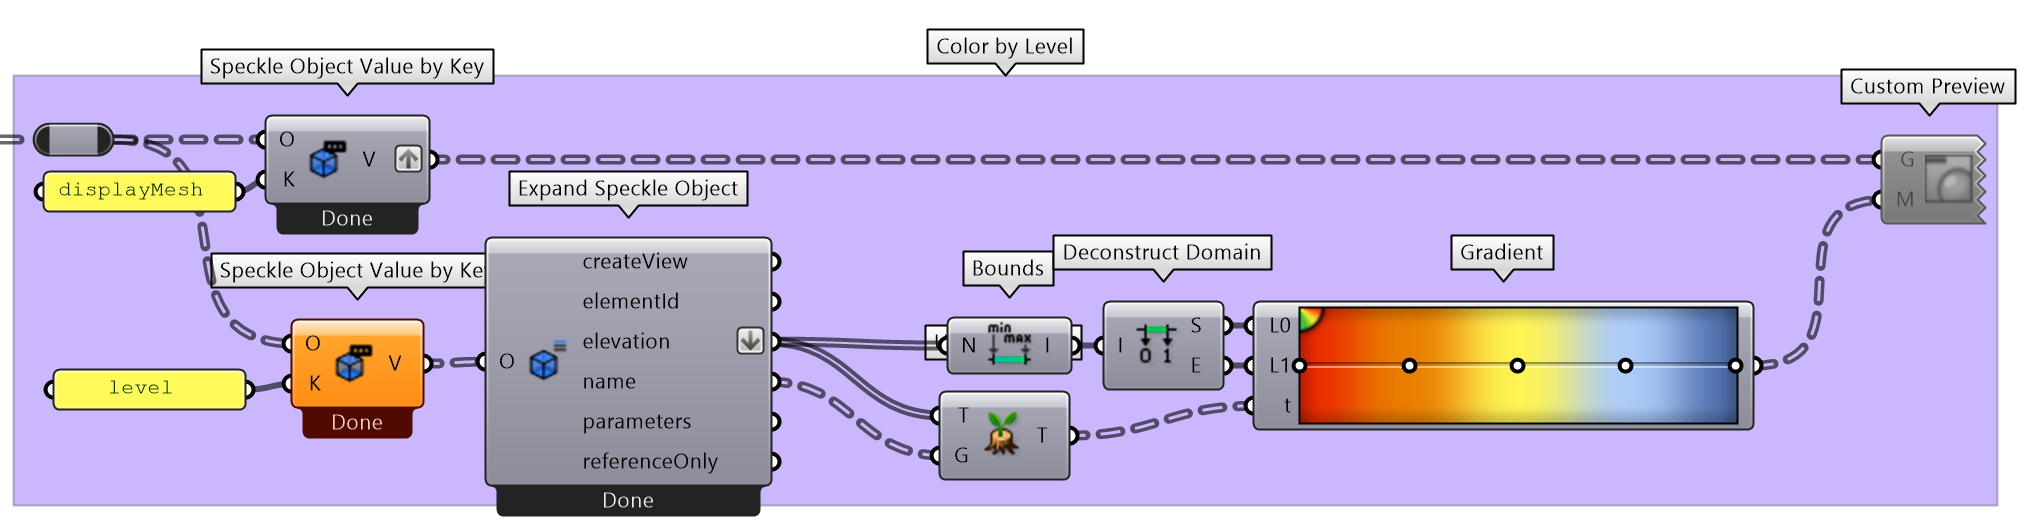 Color elements by level